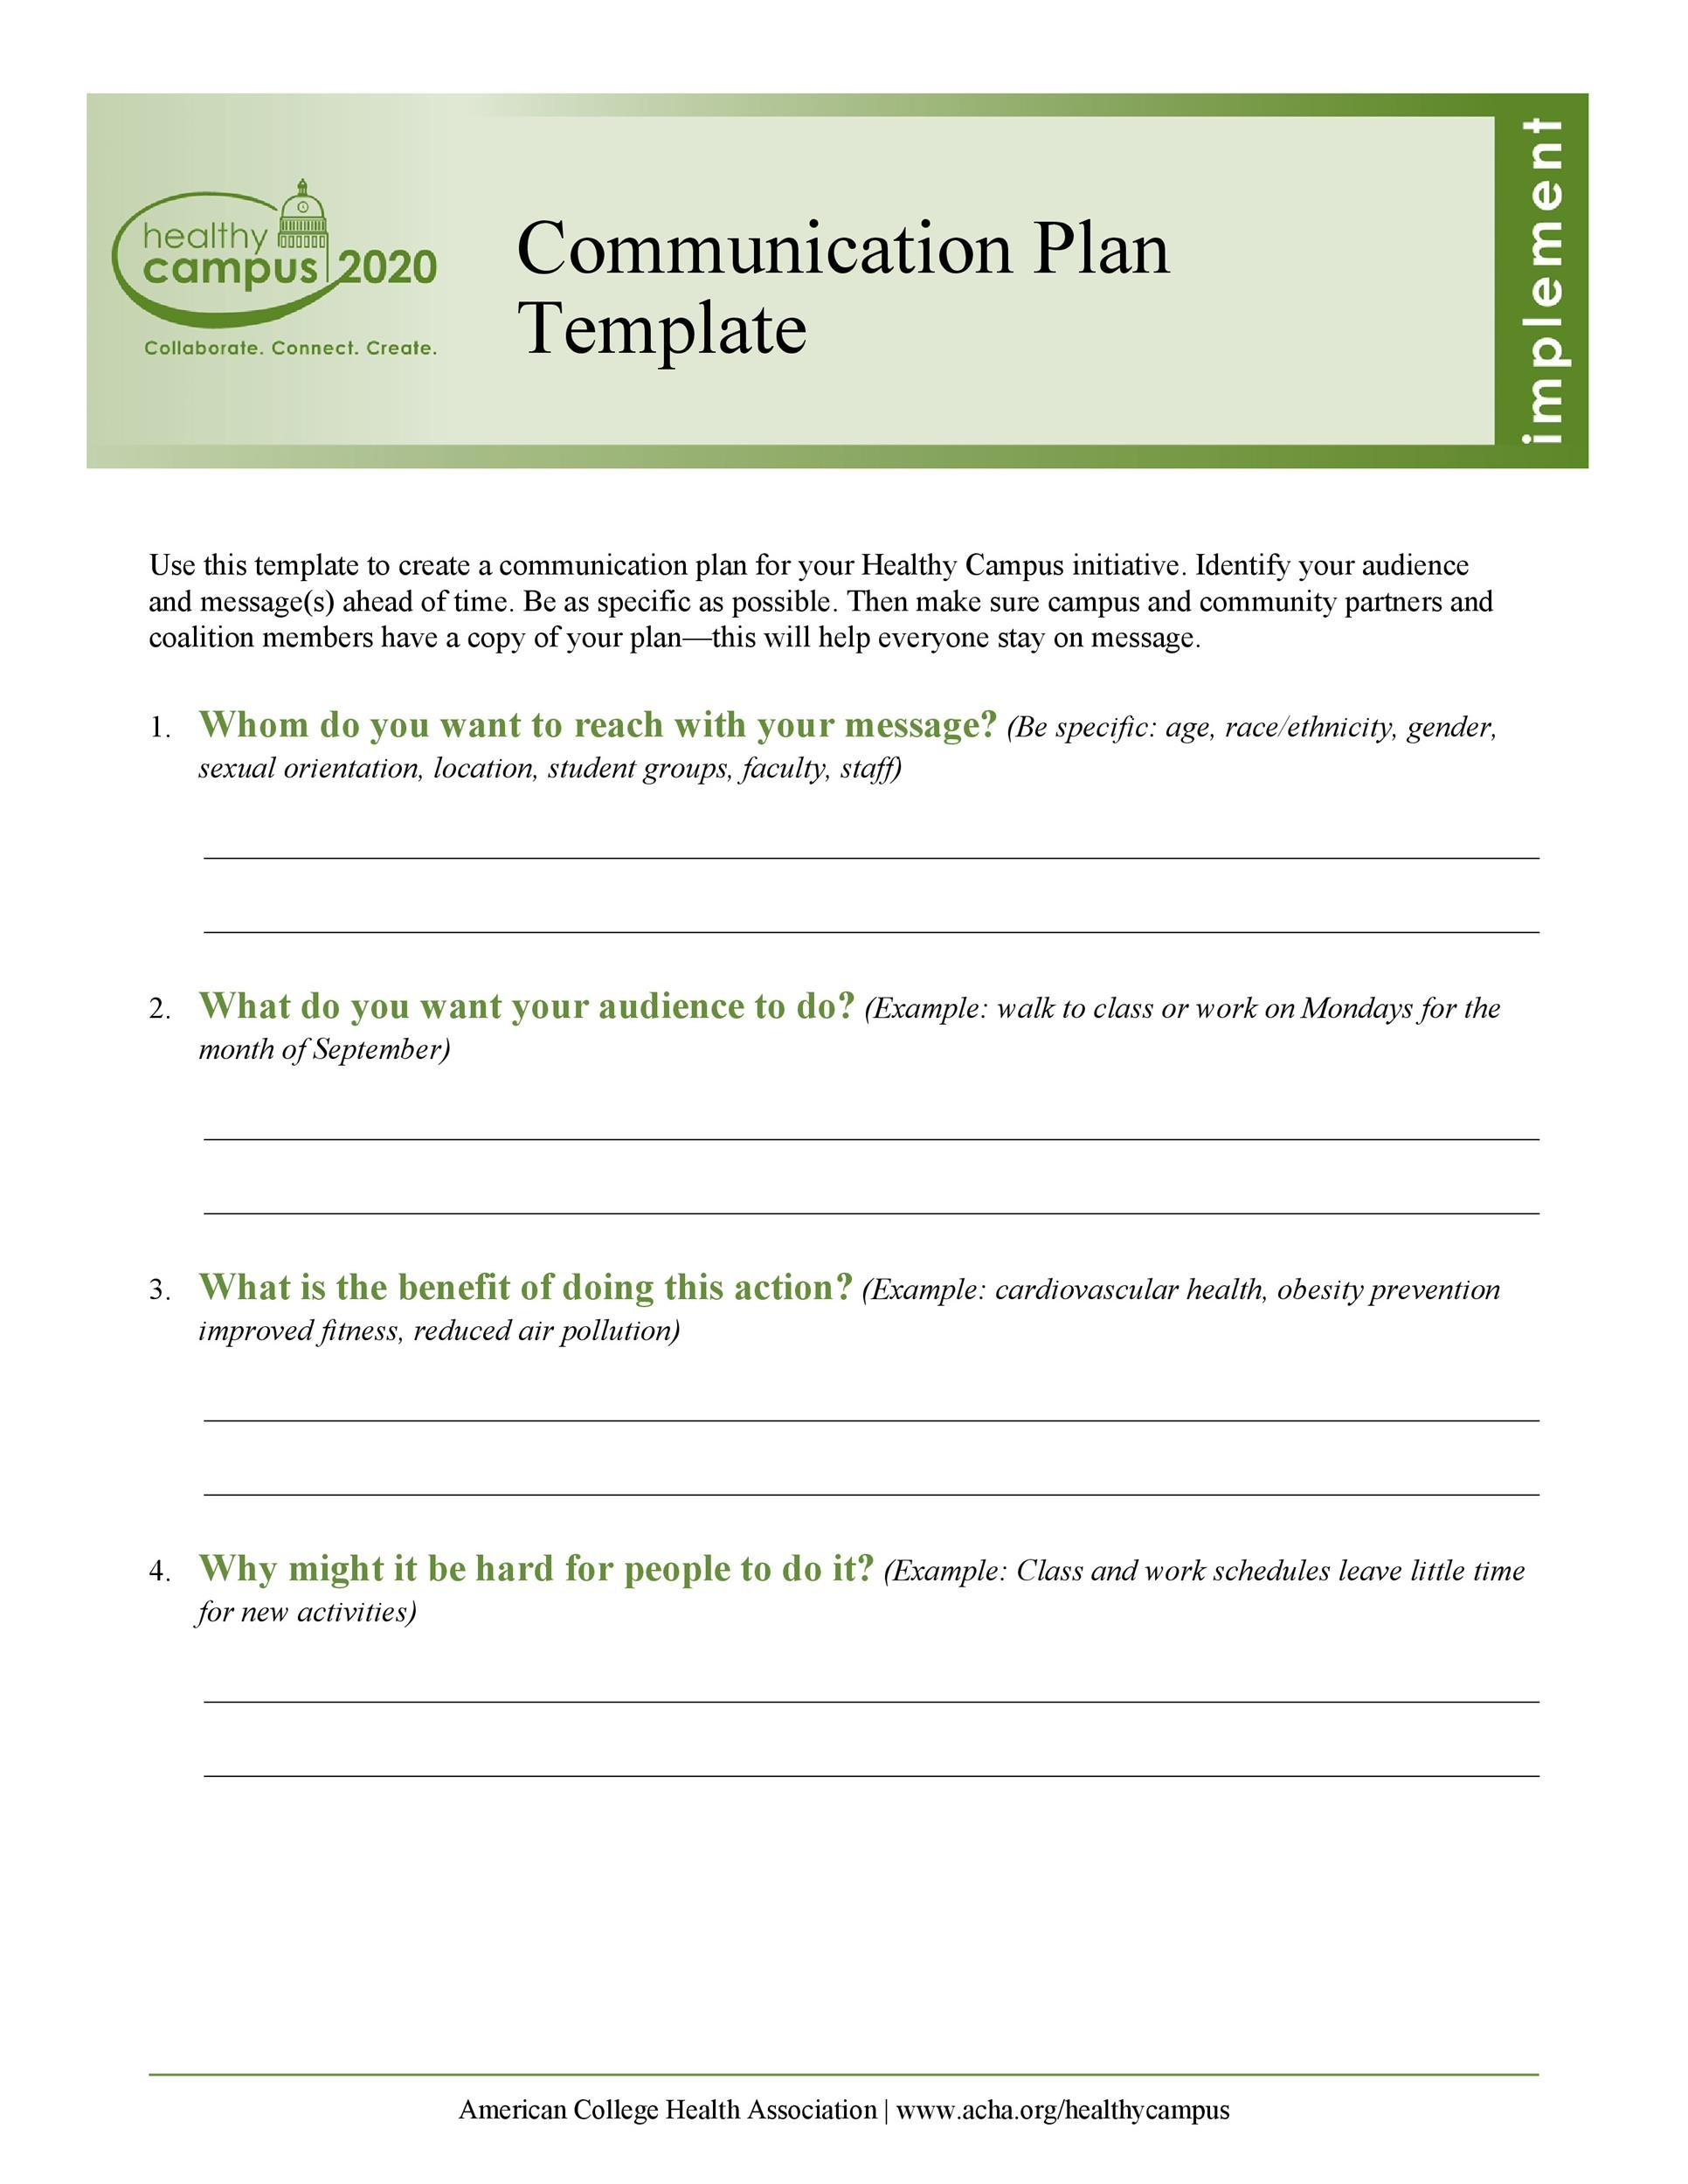 37 Simple Communication Plan Examples Free Templates